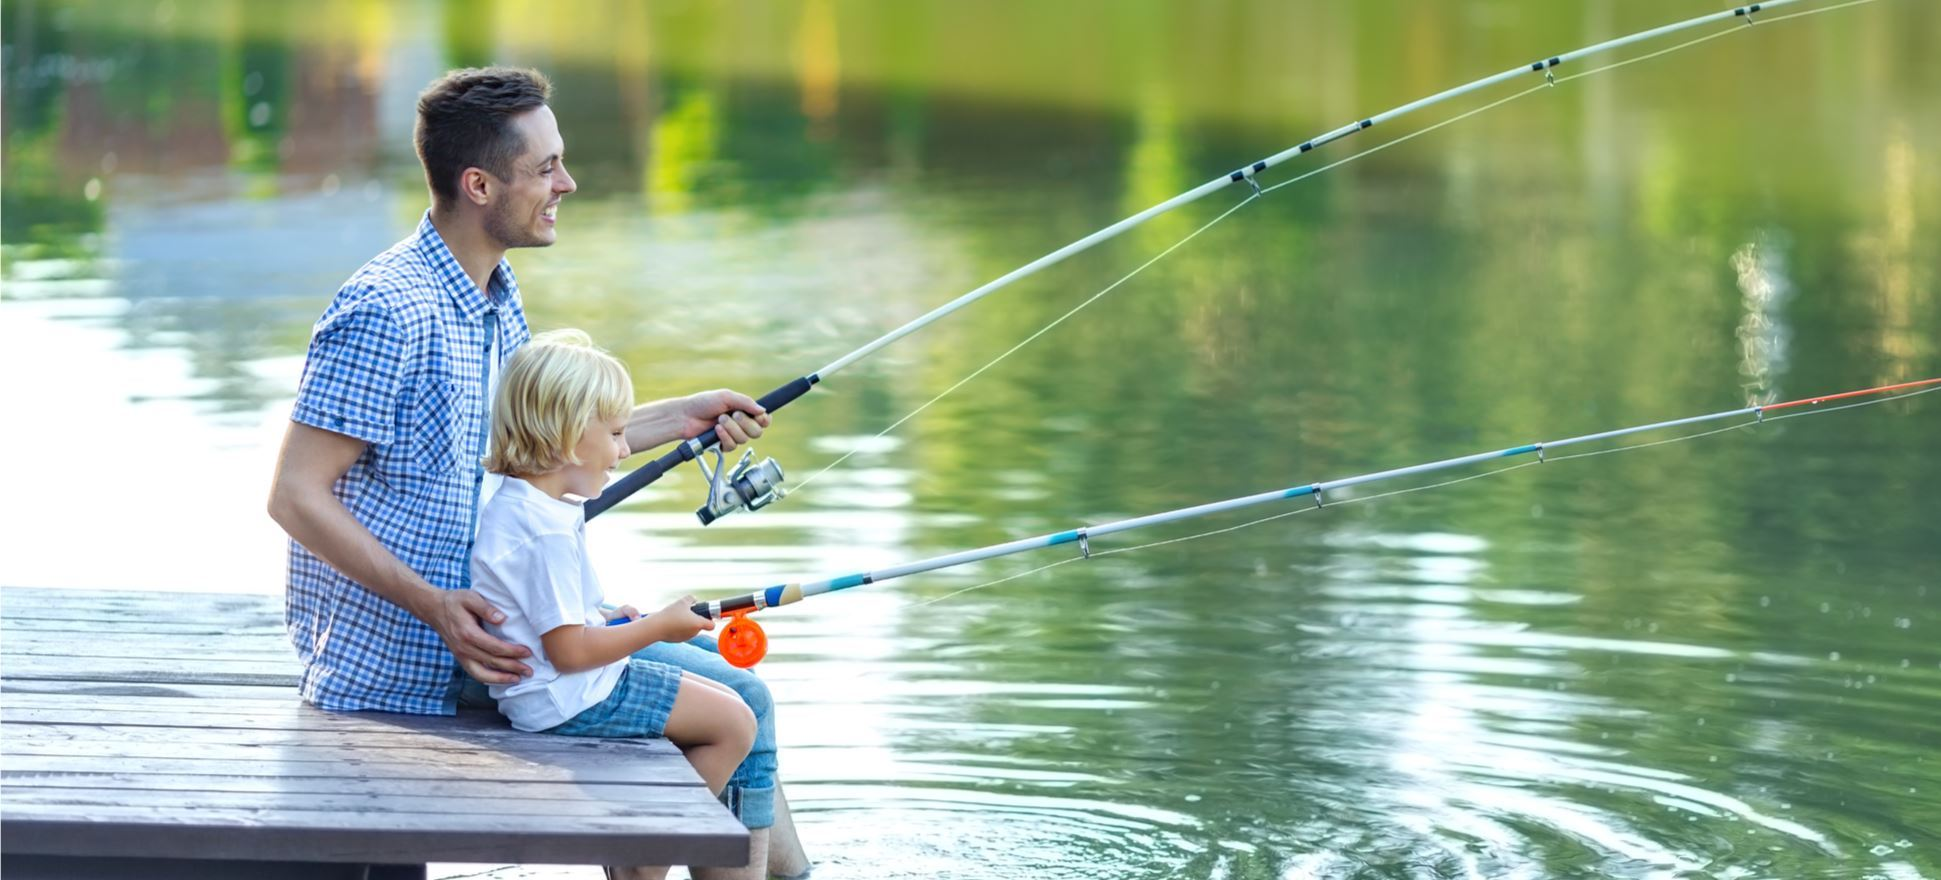 Parent and child fishing together